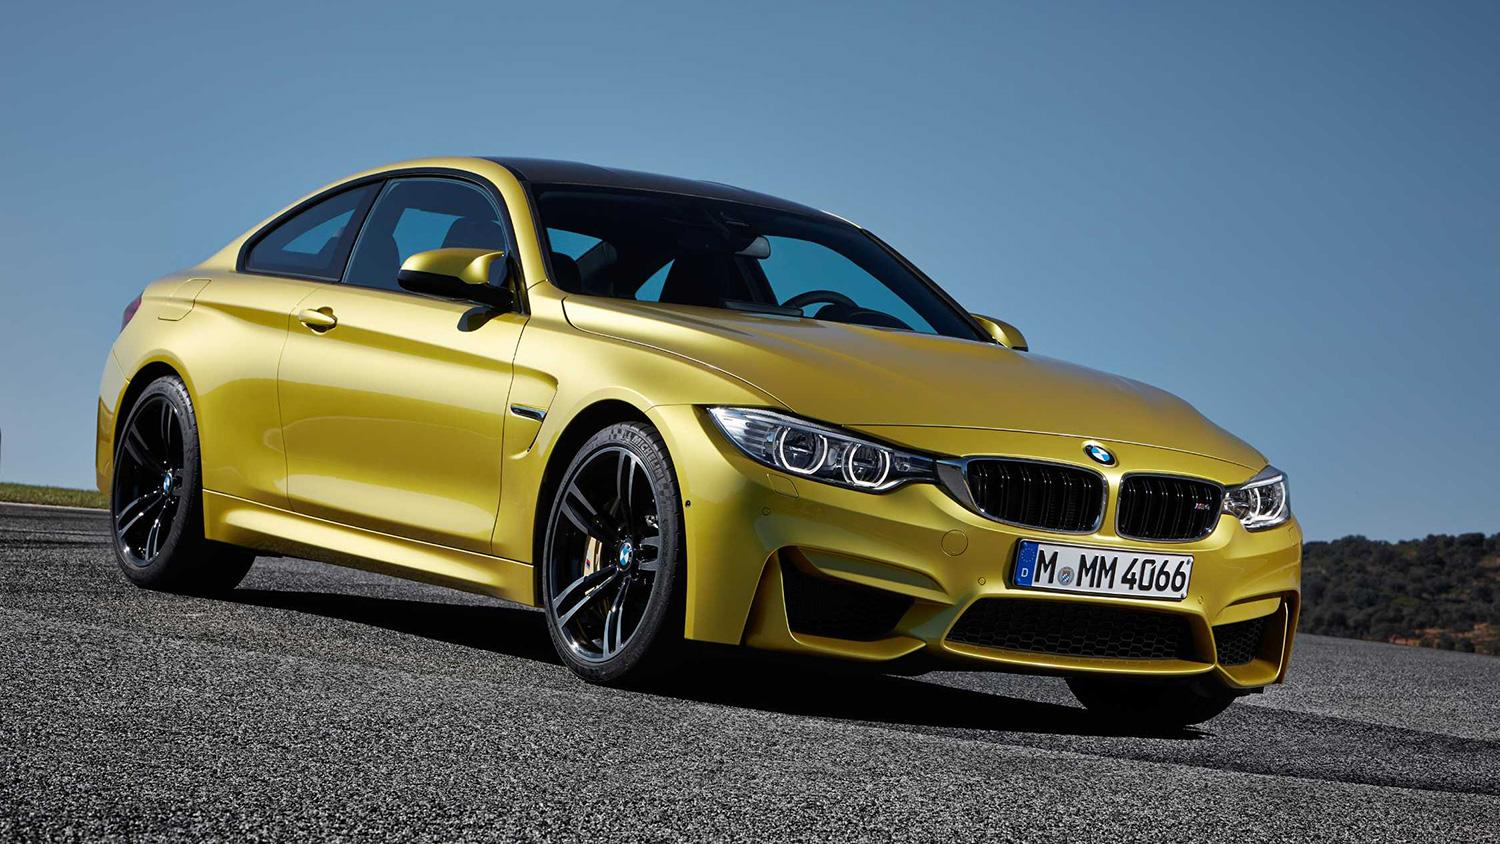 2015 bmw m4 convertible set for new york auto show unveil digital trends. Black Bedroom Furniture Sets. Home Design Ideas